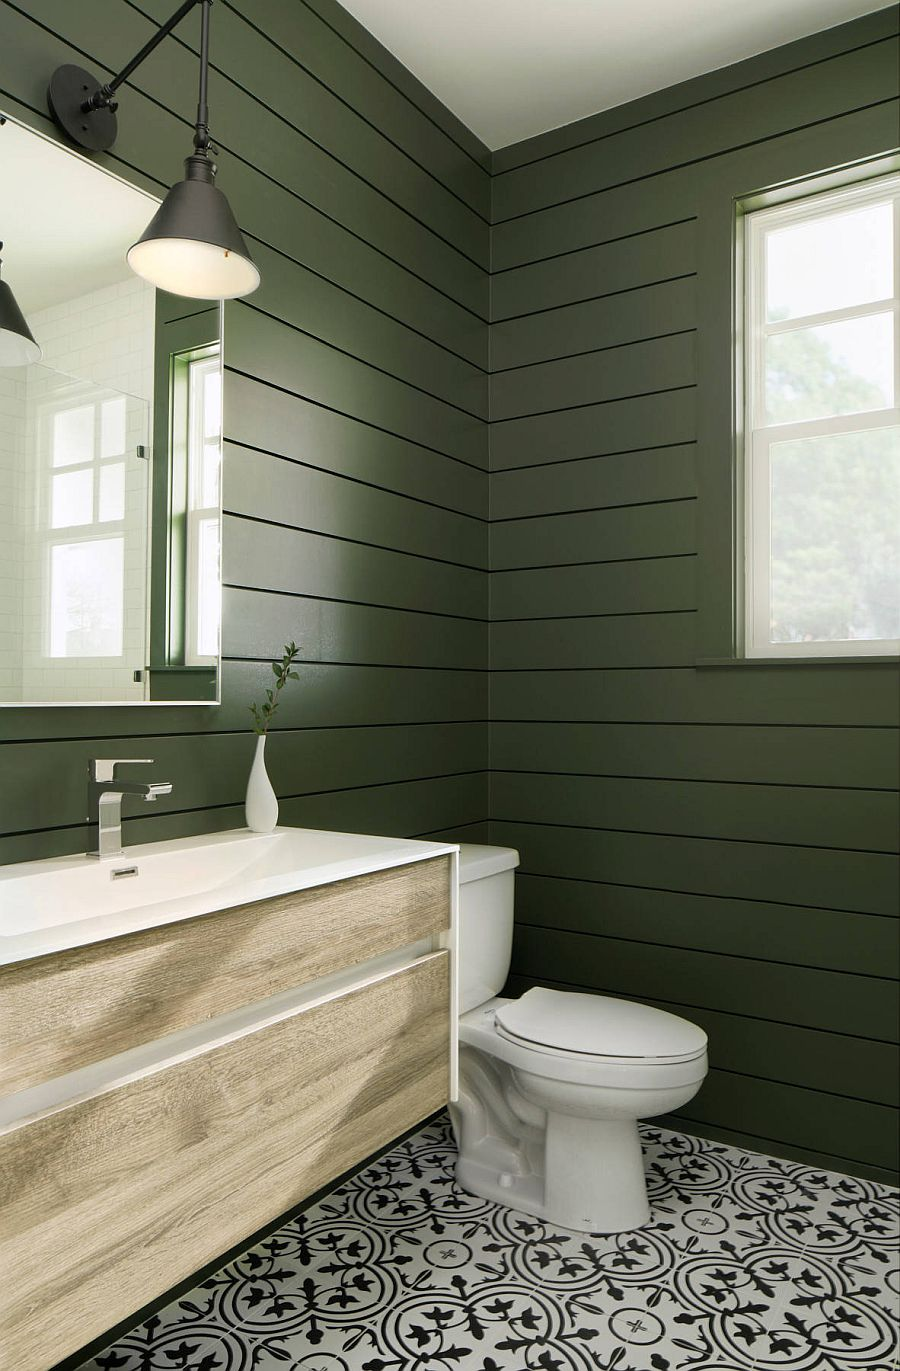 Dark green with matte finish shapes the walls of the beautiful modern bathroom